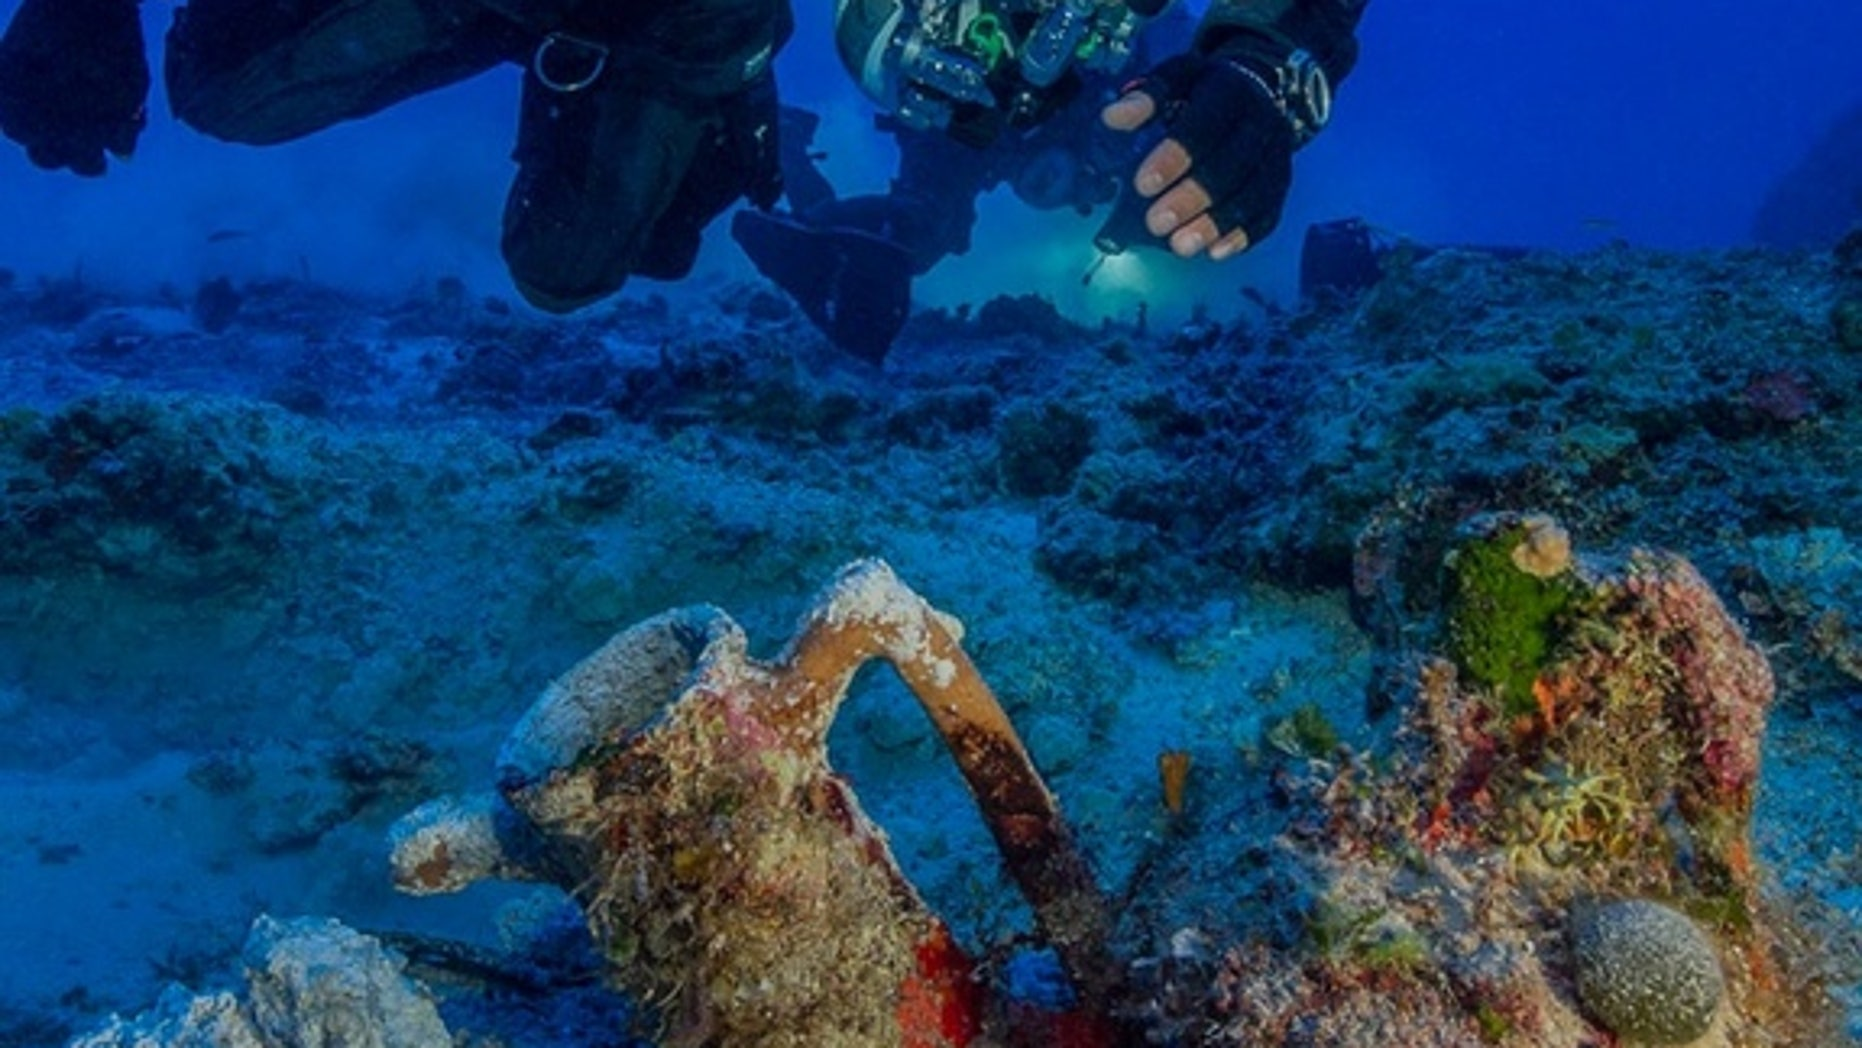 An archaeologist swims over artifacts at the site of the Antikythera shipwreck. In 2015, researchers pulled 50 new objects from the depths as part of the first scientific excavation of the wreck site.